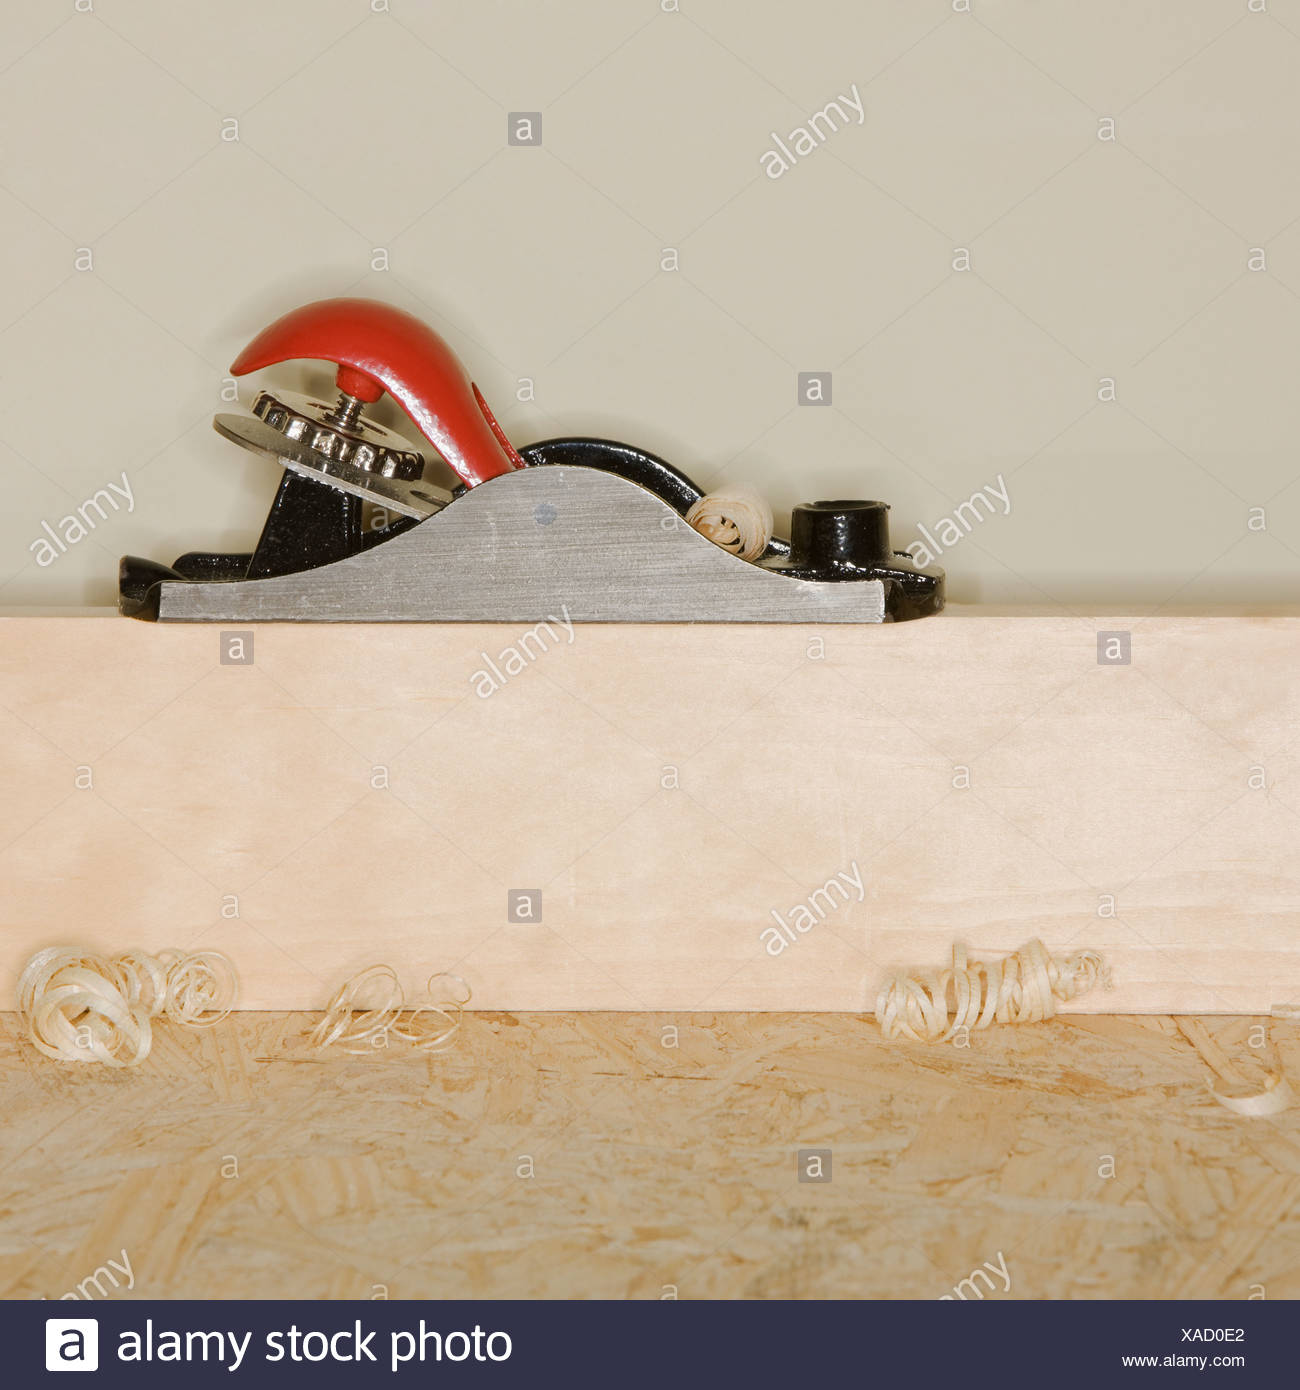 Woodworking plane on block of wood - Stock Image